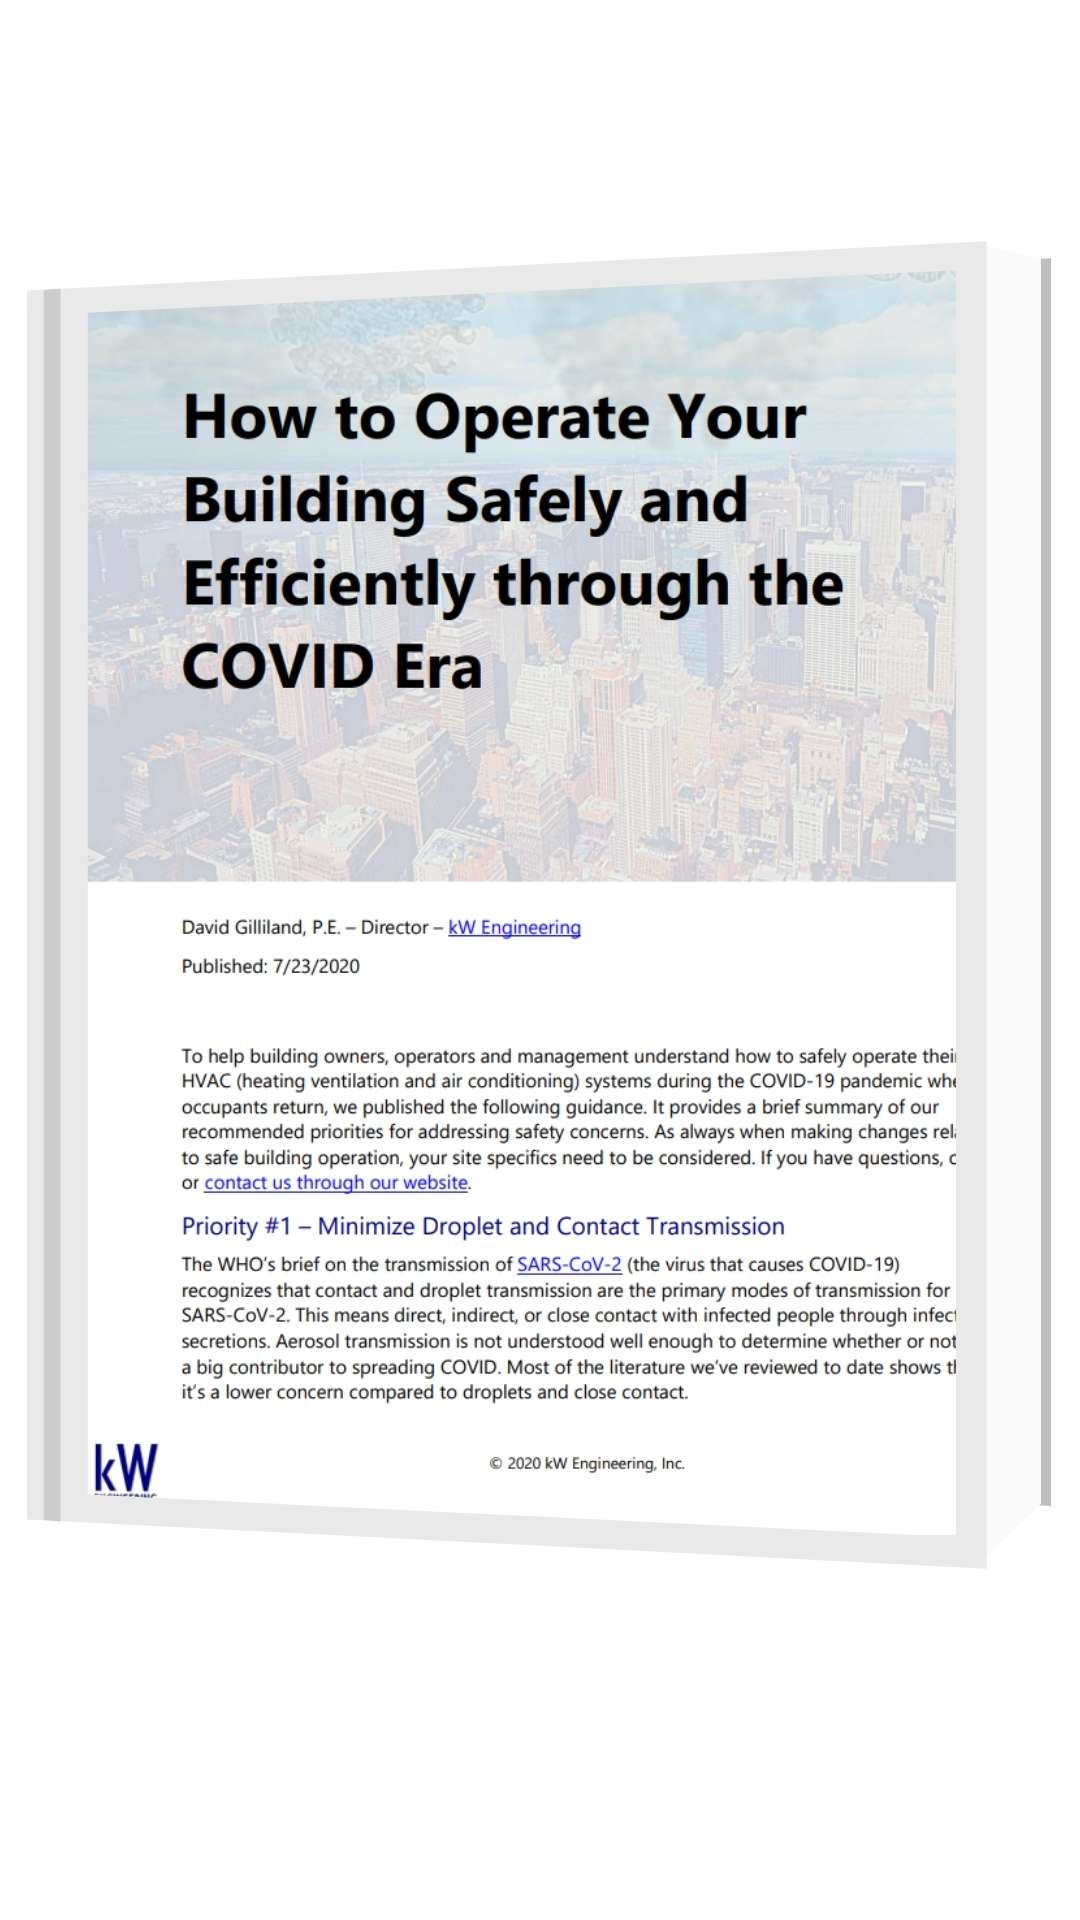 covid-19 building readiness ventilation guide kw engineering